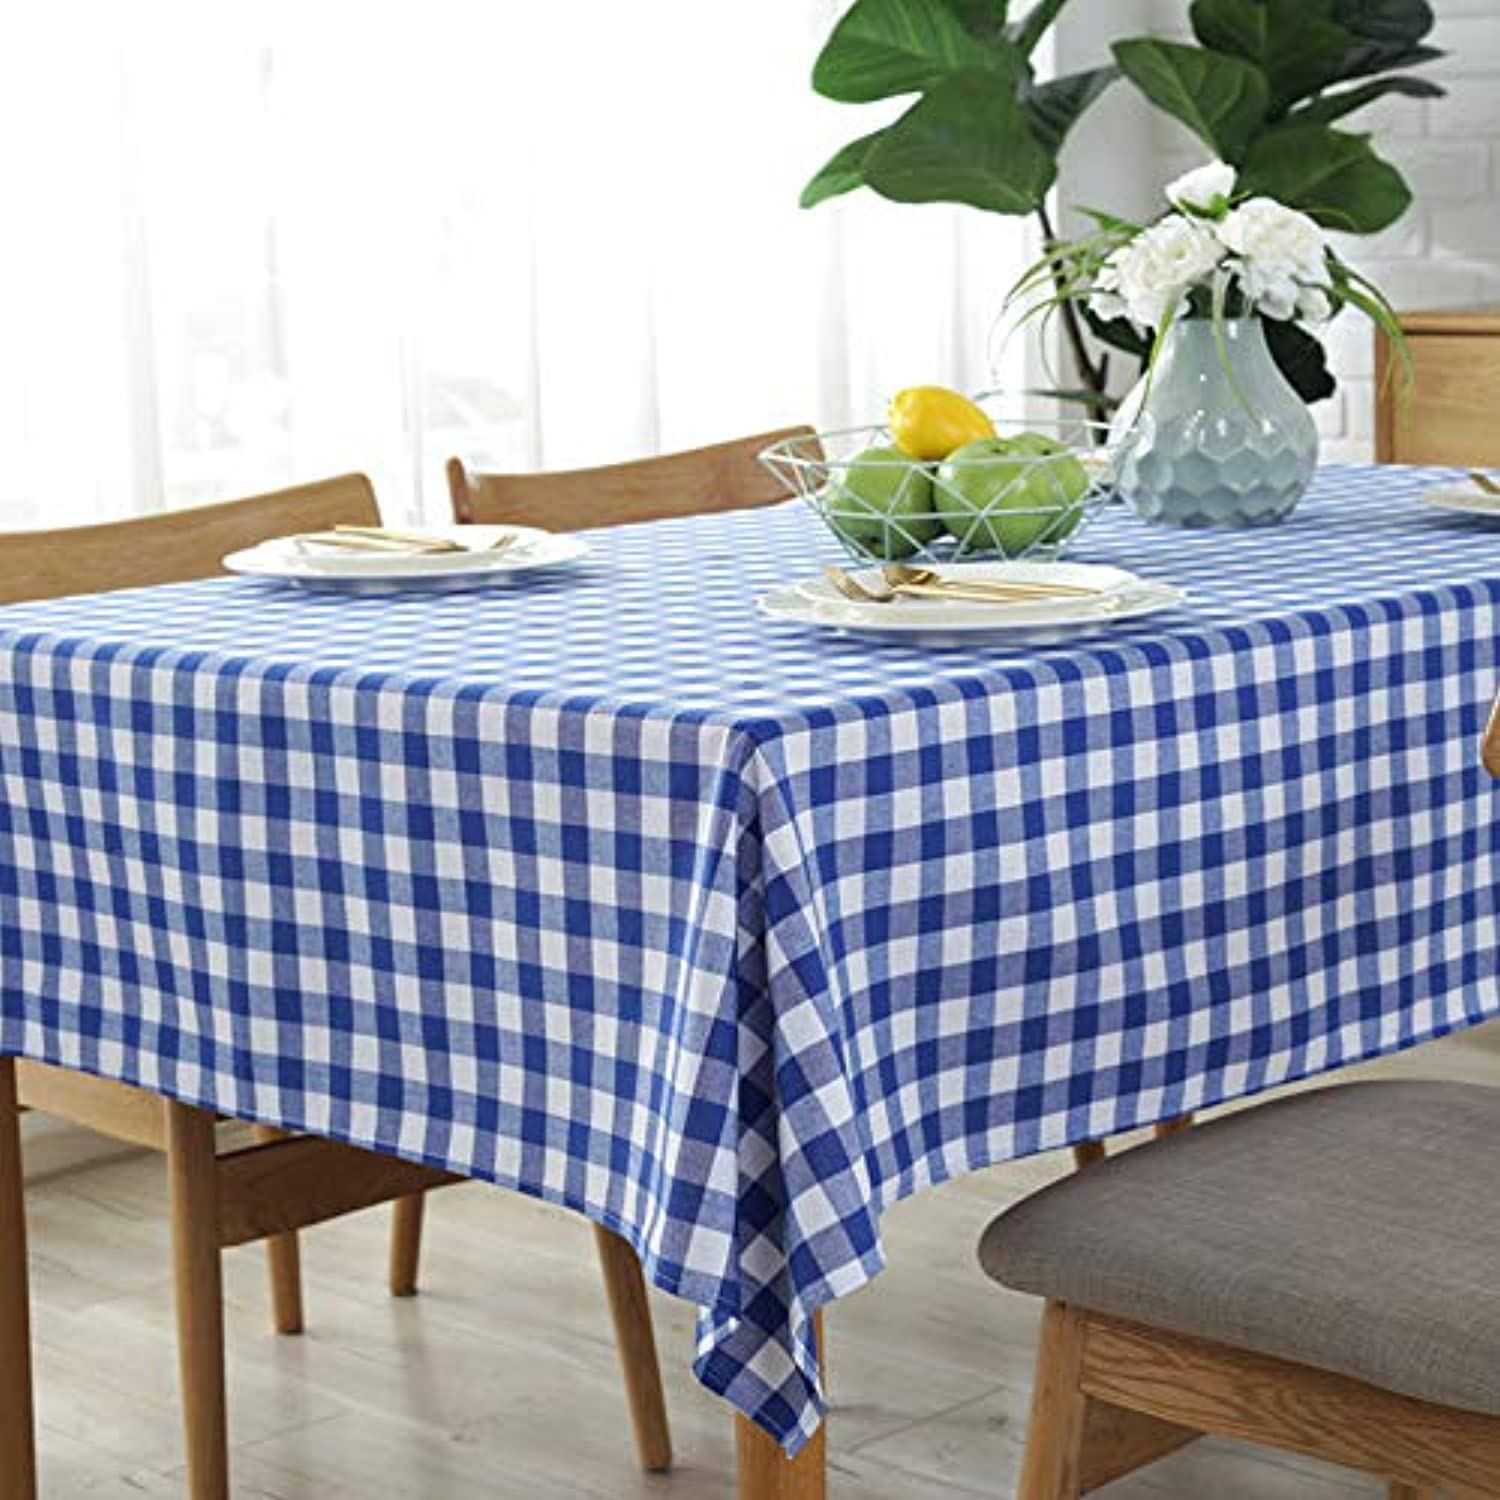 Creek Ywh Nordic net red plaid tablecloth pastoral simple rectangular coffee table cloth cover cloth photo background cloth, bluee plaid tablecloth, 140220